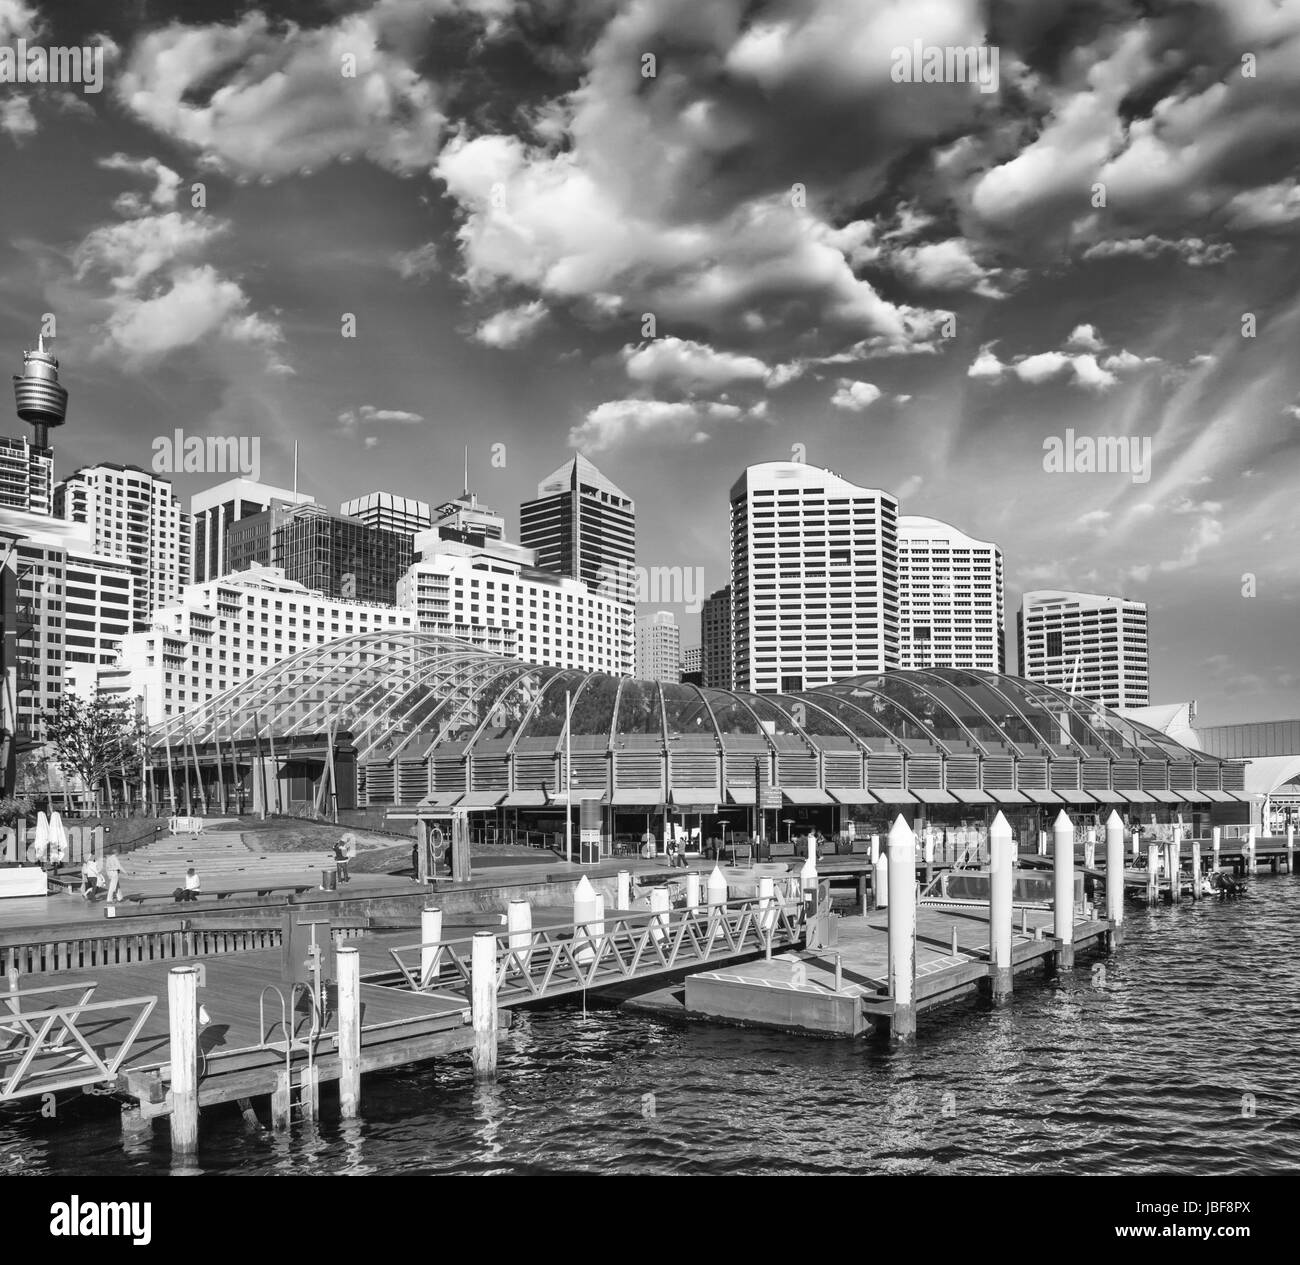 Beautiful skyline of Sydney with city skyscrapers. - Stock Image